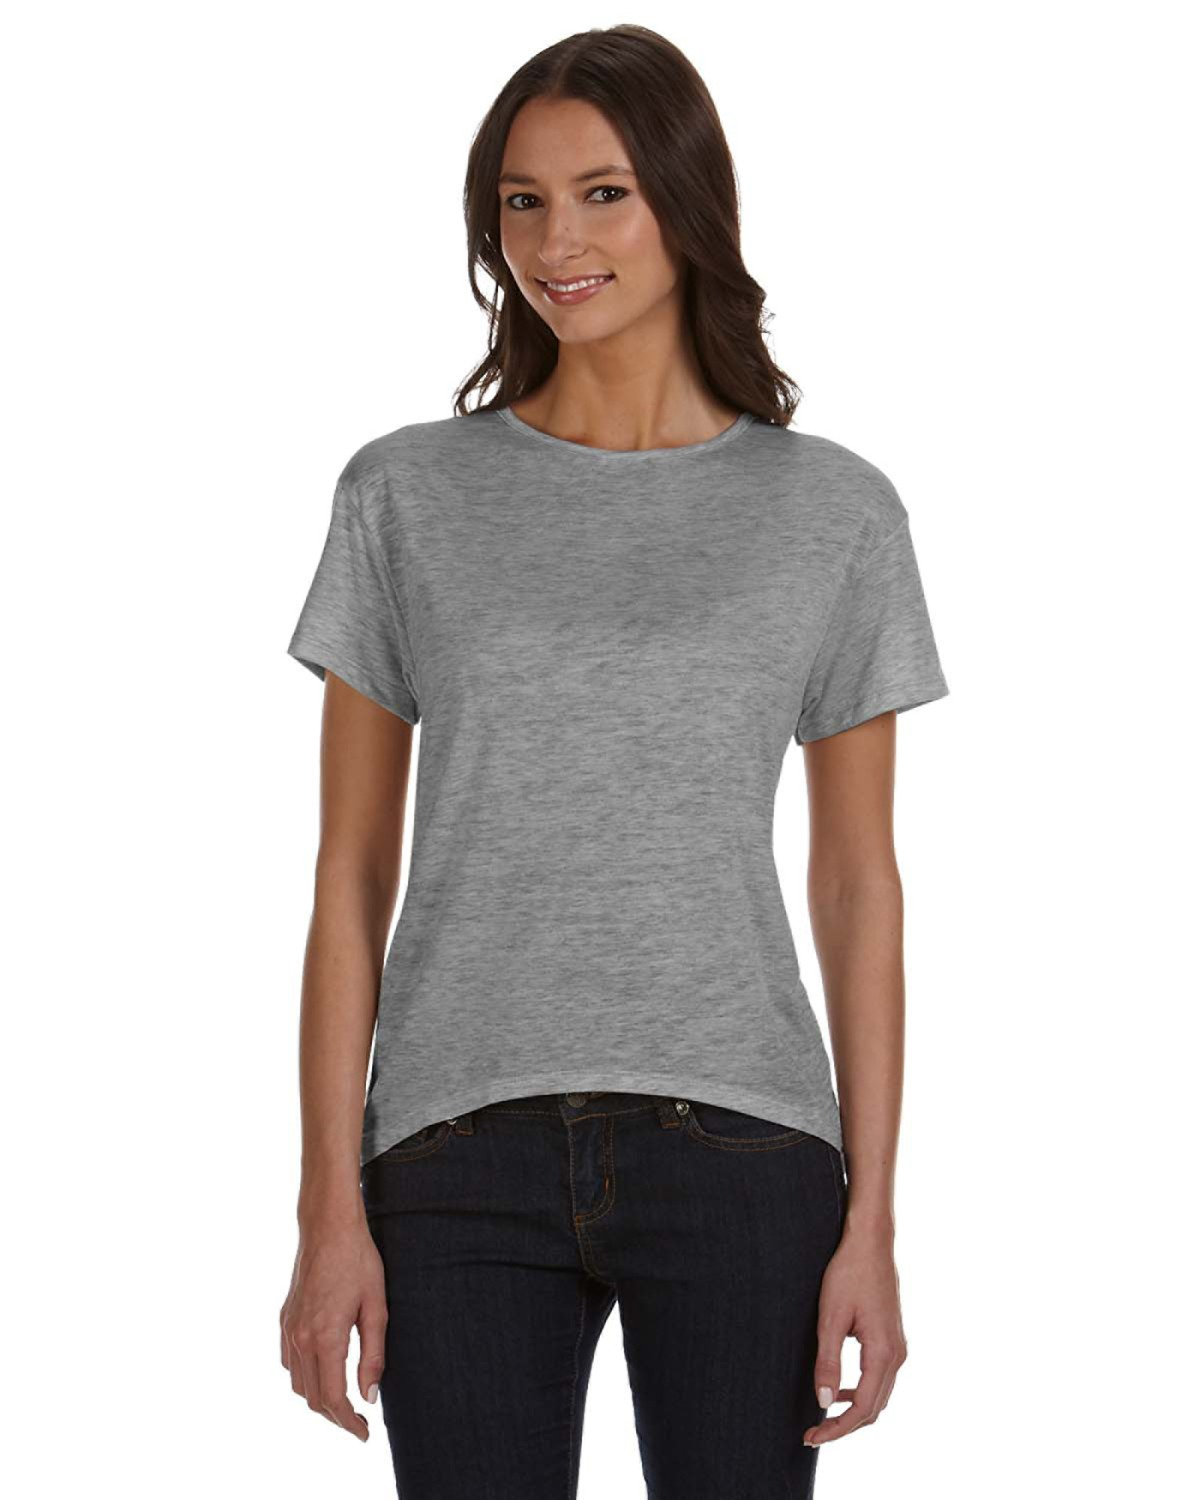 30407c38c Alternative - 02623B2 Ladies' Pony T-Shirt With Strap $11.73 - Women's T- Shirts